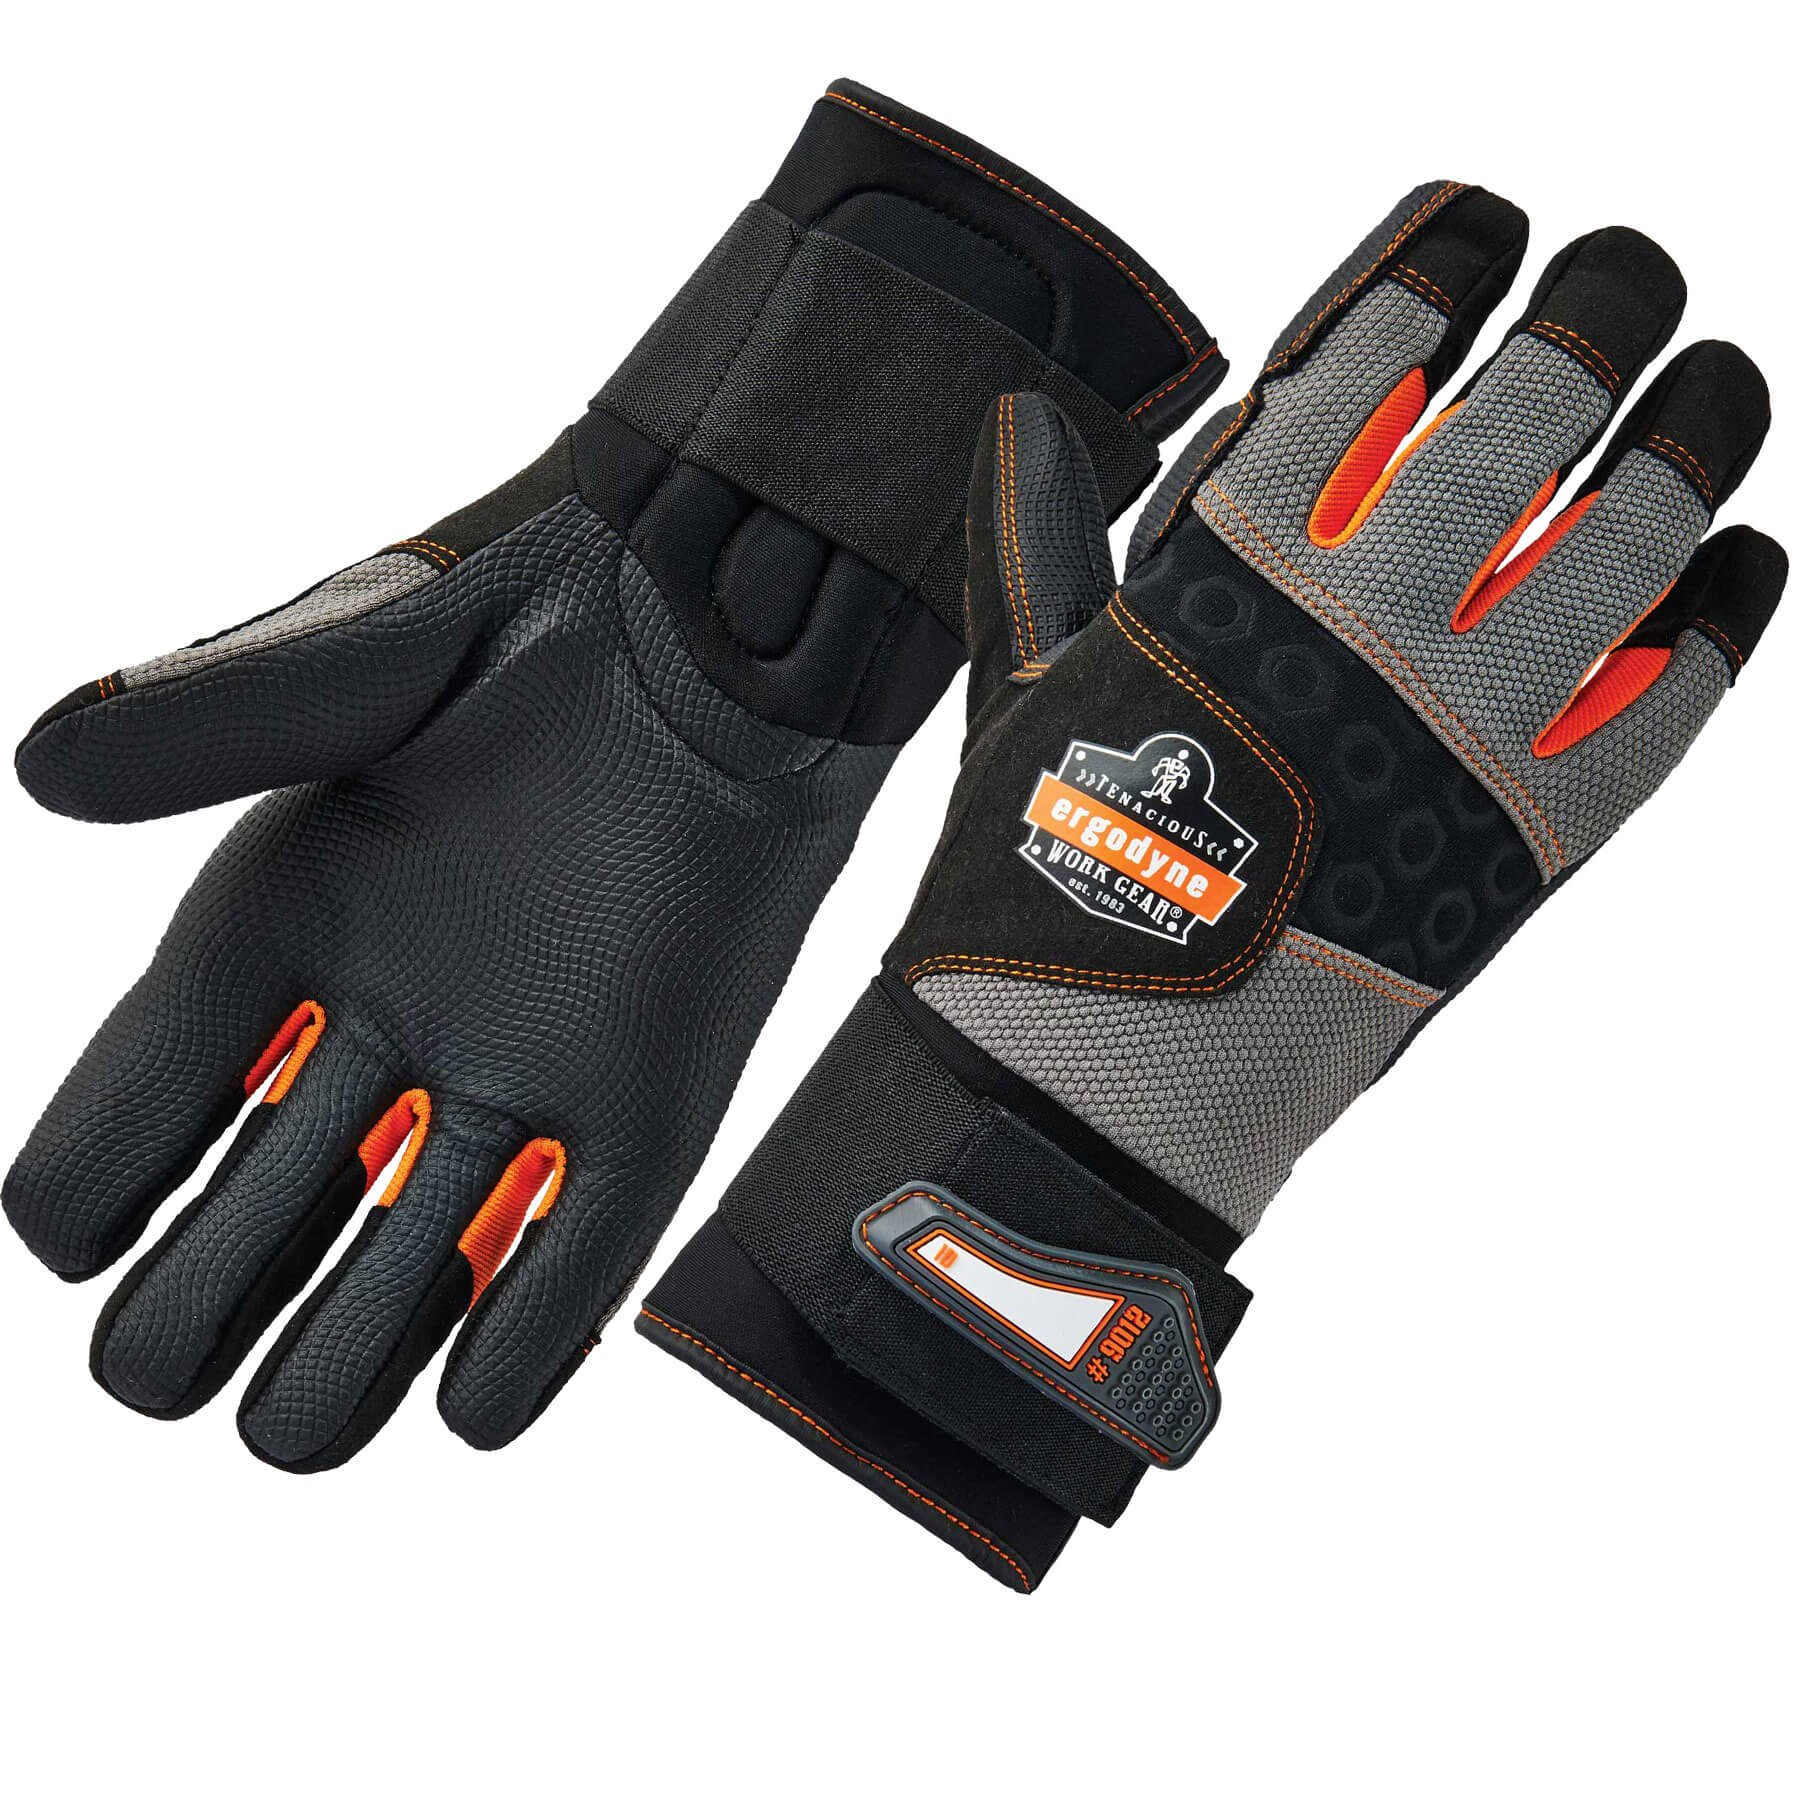 Ergodyne ProFlex 9012 Anti-Vibration Work Gloves, ANSI/ISO Certified, Full Fingered, Wrist Support, Large